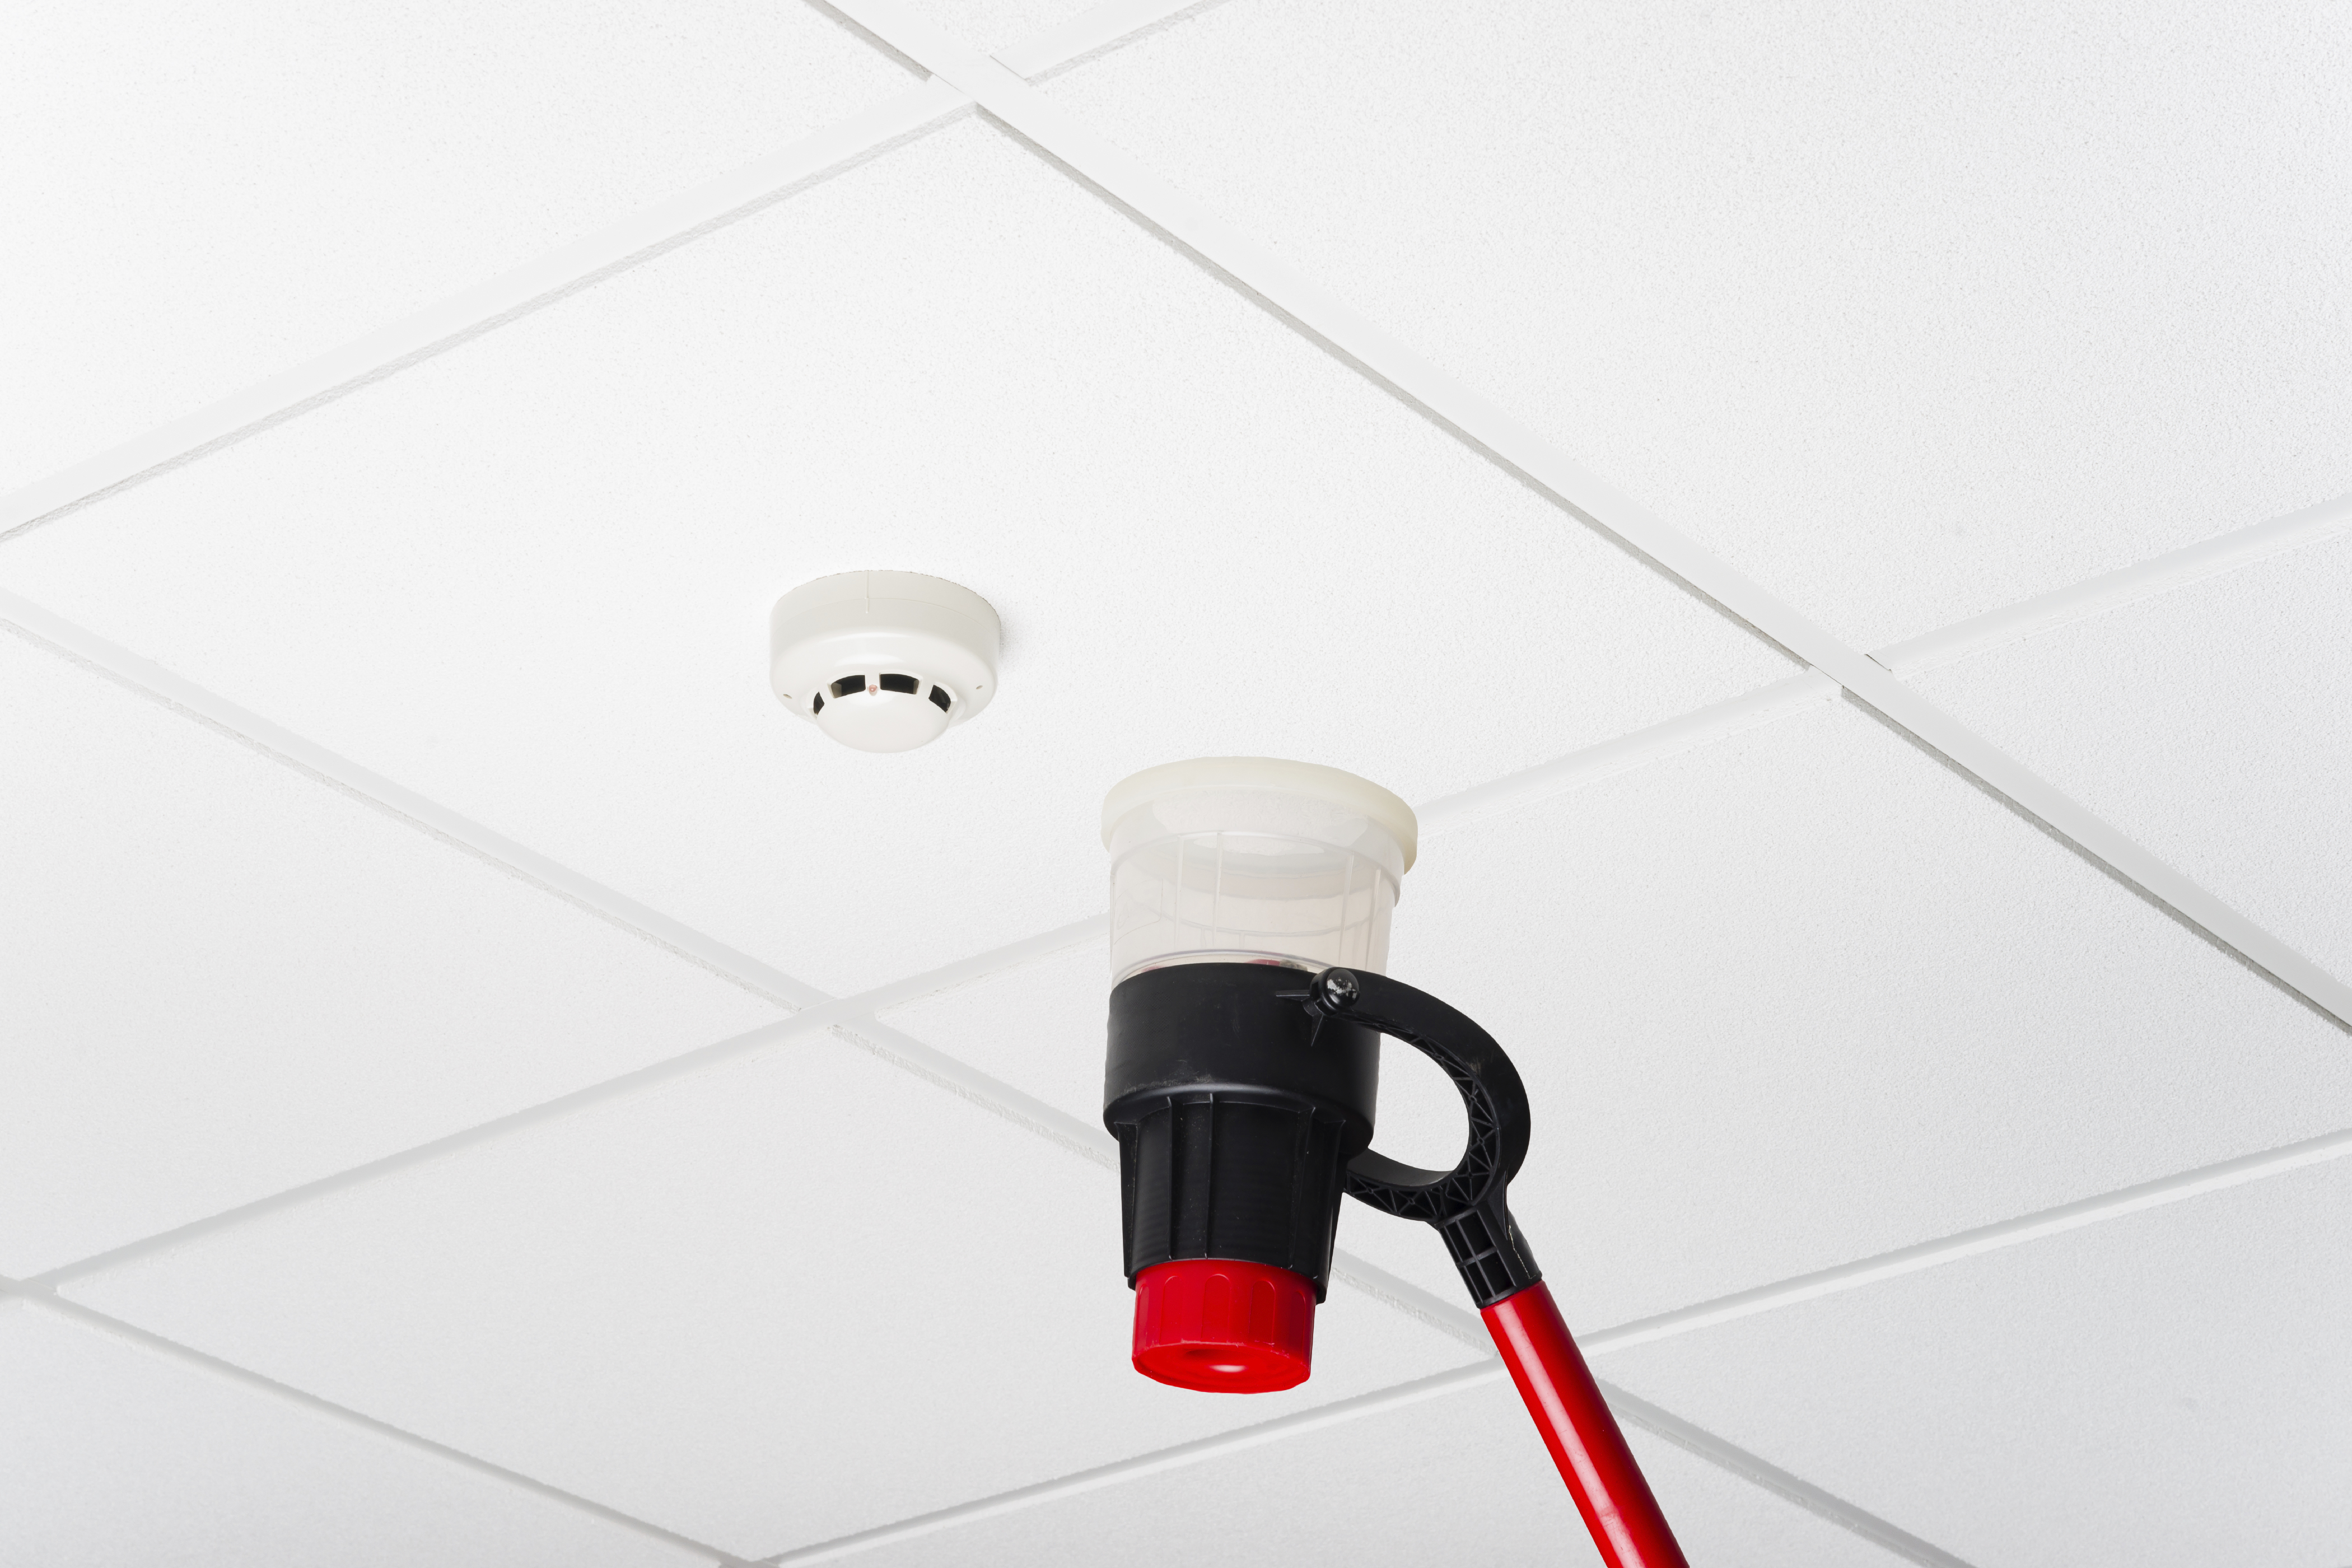 Fire alarms sussex fire detection alarm brighton fire alarm maintenance sussex freerunsca Gallery